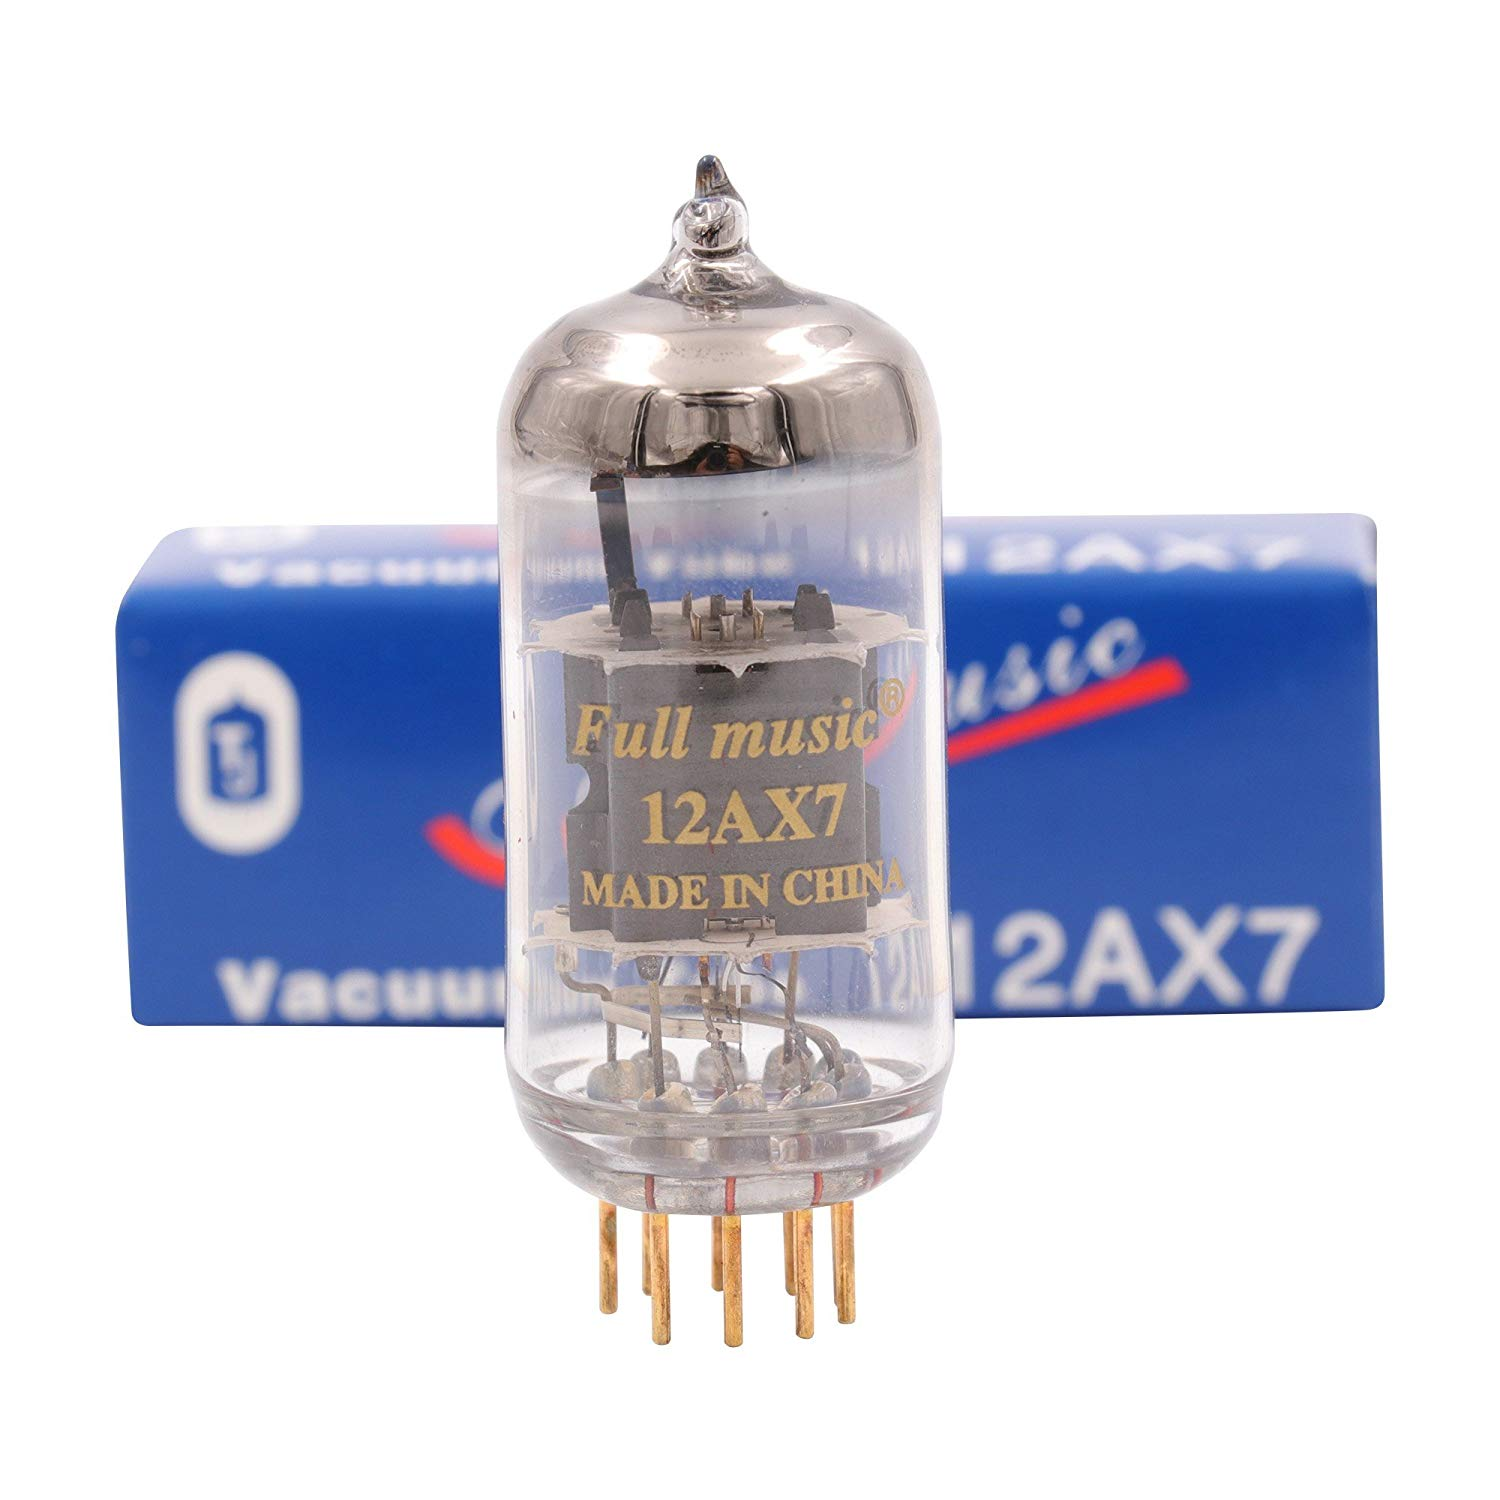 TJ Fullmusic 12AX7 Vacuum Tube ECC83 Electron Tube For Vintage Hifi Audio Tube AMP Microphone Factory matched pair